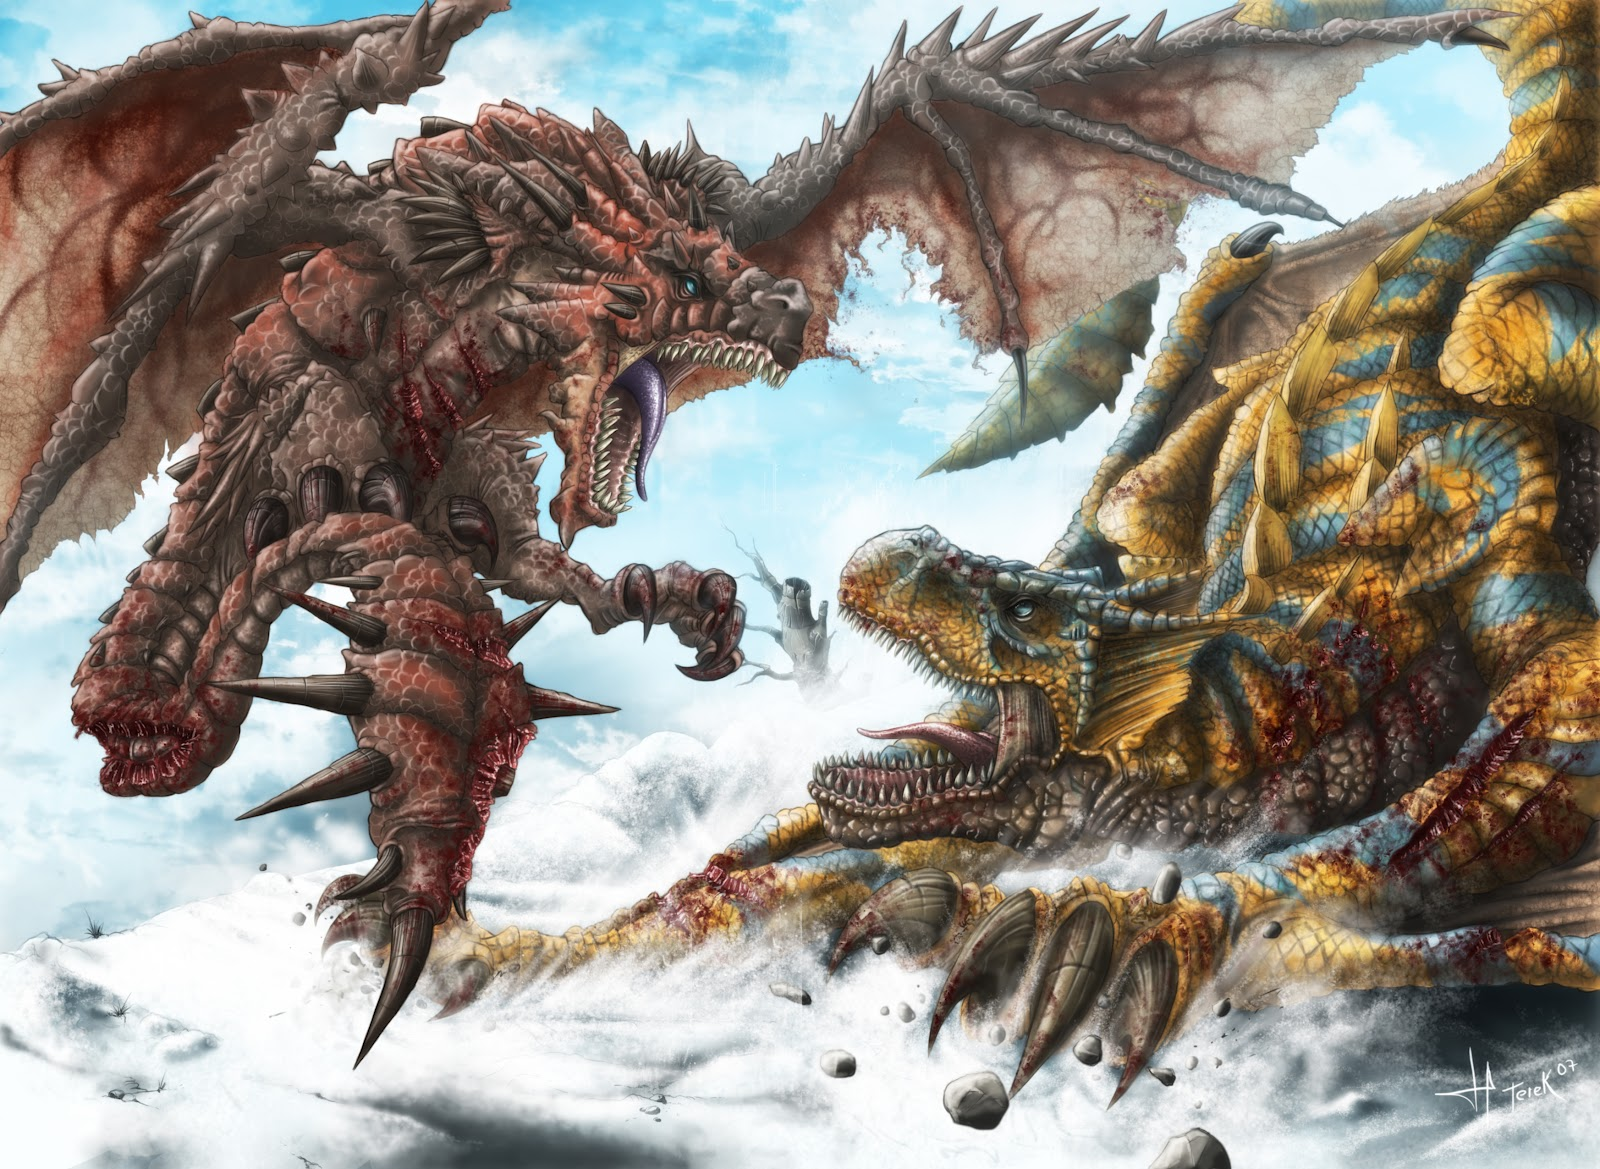 Background image vs img - Monster Hunter Freedom 2 Rathalos Vs Tigrex Wallpaper Background Capcom Action Rpg Role Playing Game Img Image Picture Pic